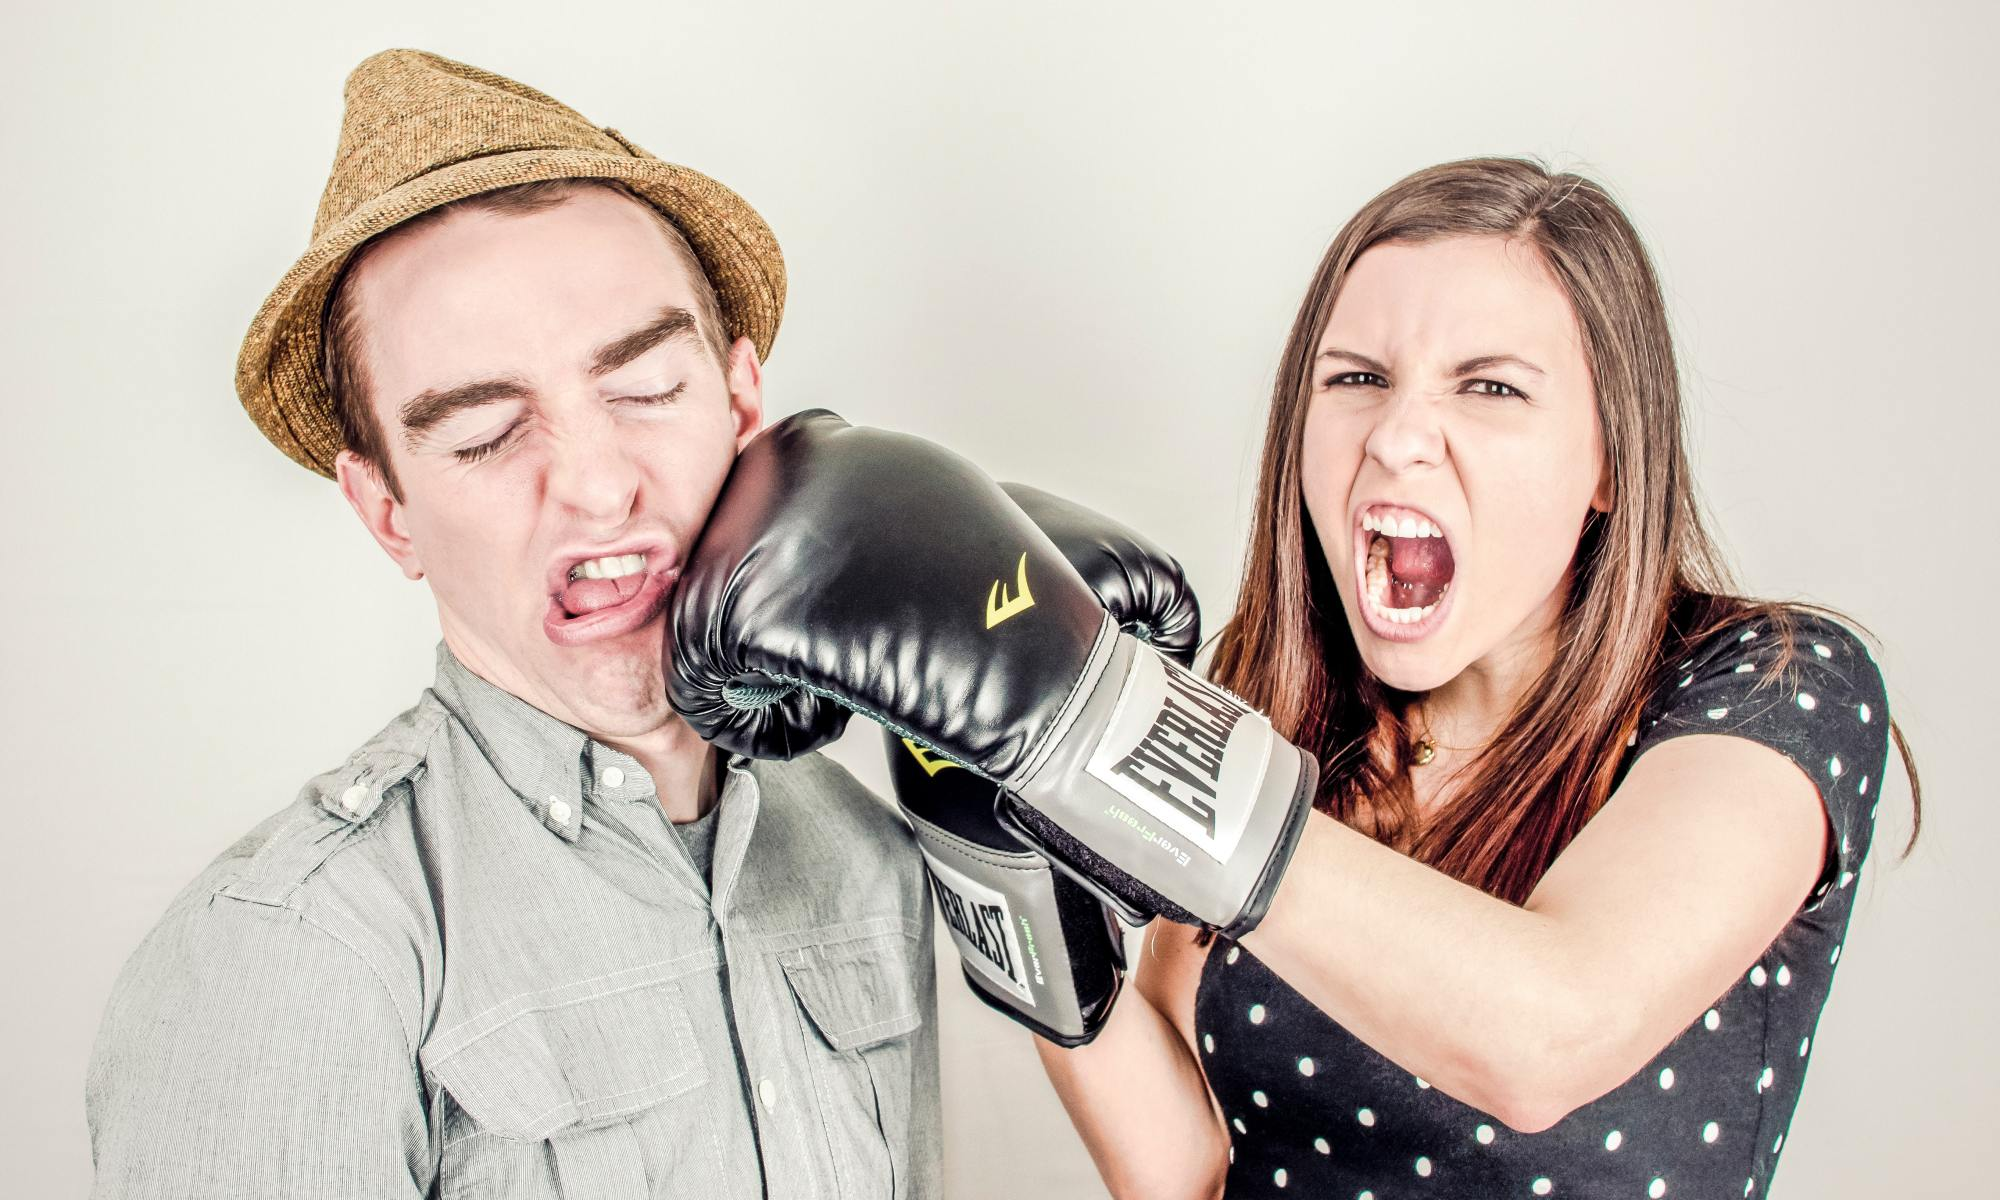 Woman hitting man with boxing gloves